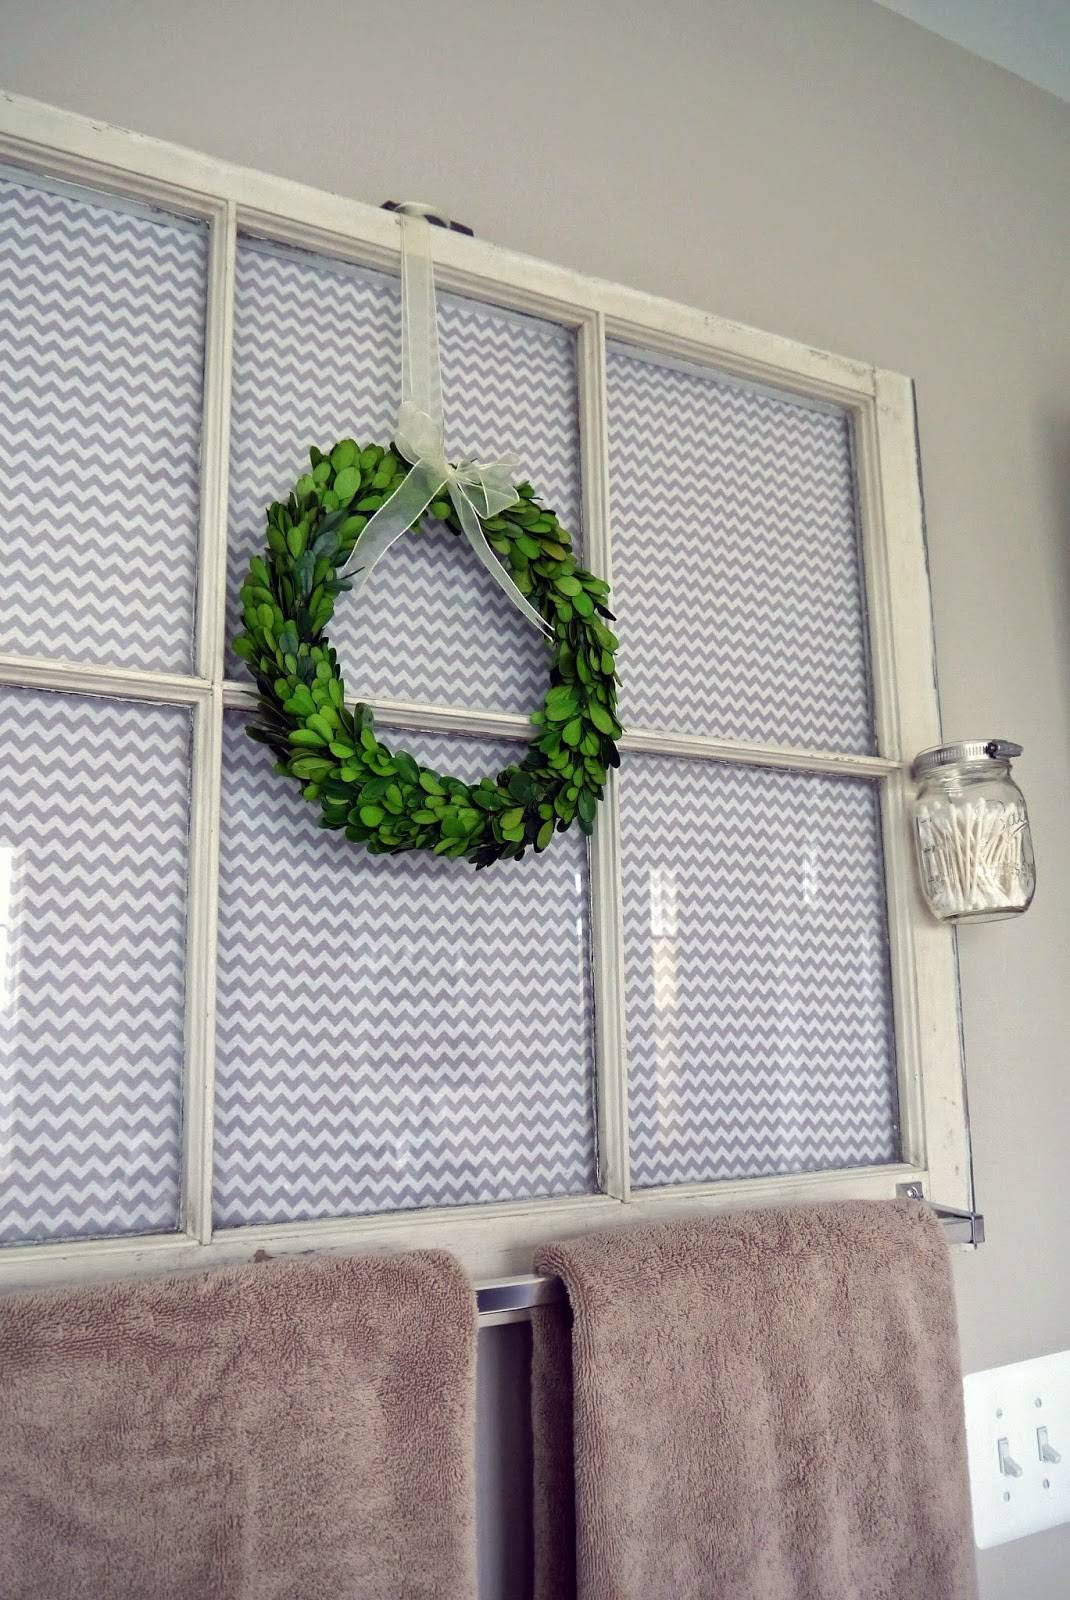 Upcycled Window Frame Towel Hanger